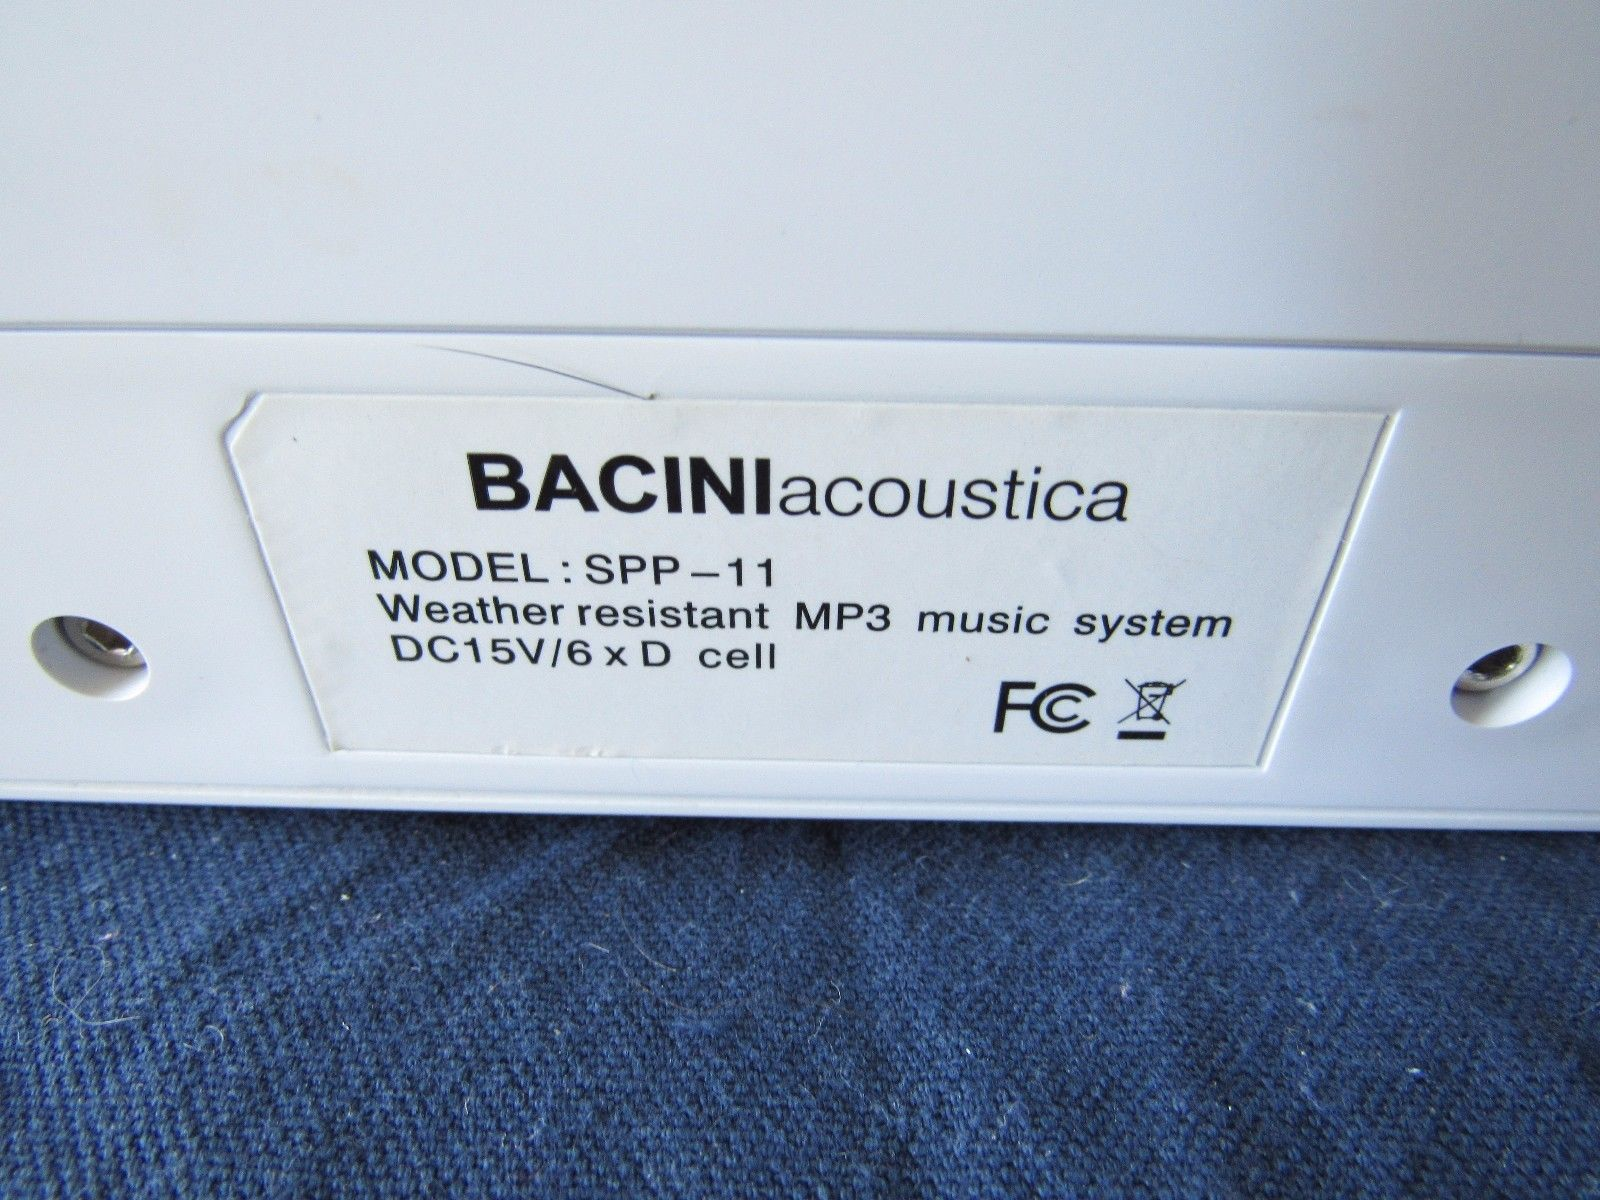 Bacini Acoustica Music System Weather Resistant MP3 SPP-11 Outdoor Speaker #2